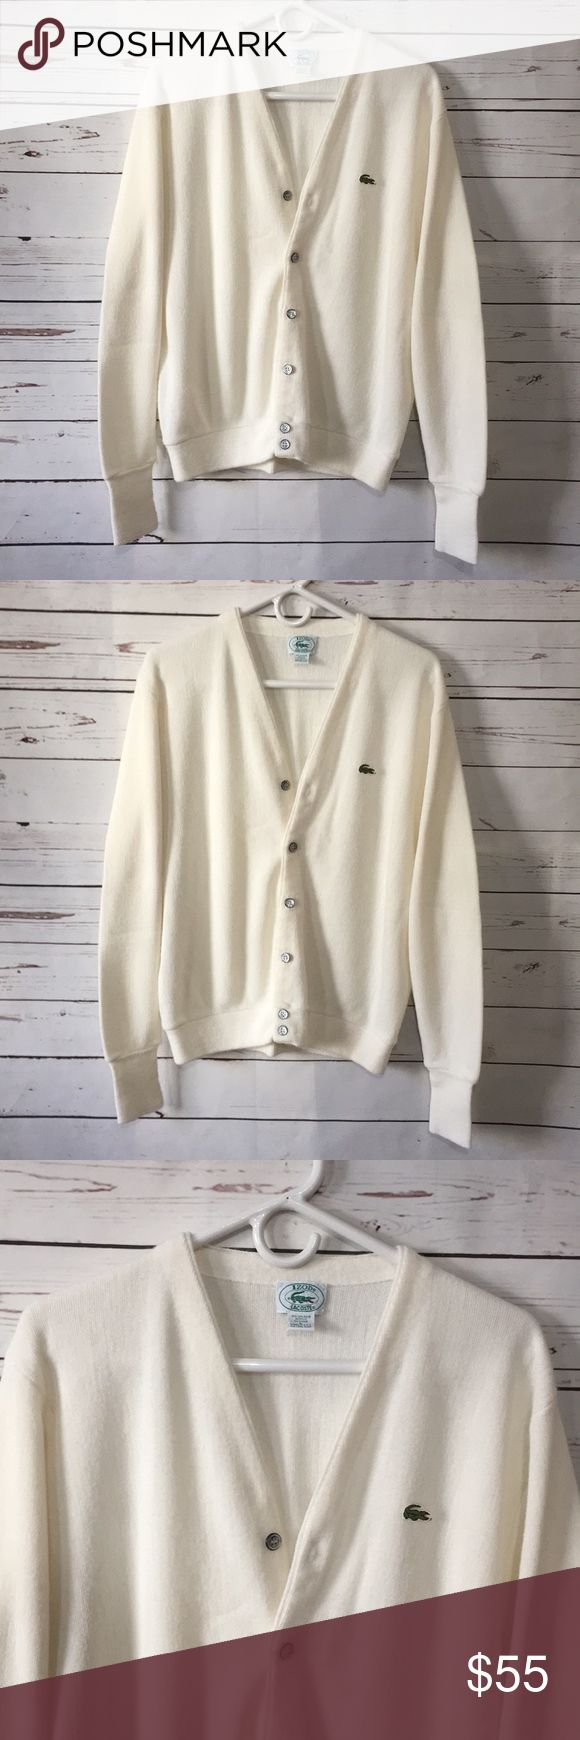 Vintage Lacoste cardigan sweater Made in USA! Excellent condition! Off white. Lacoste Sweaters Cardigans